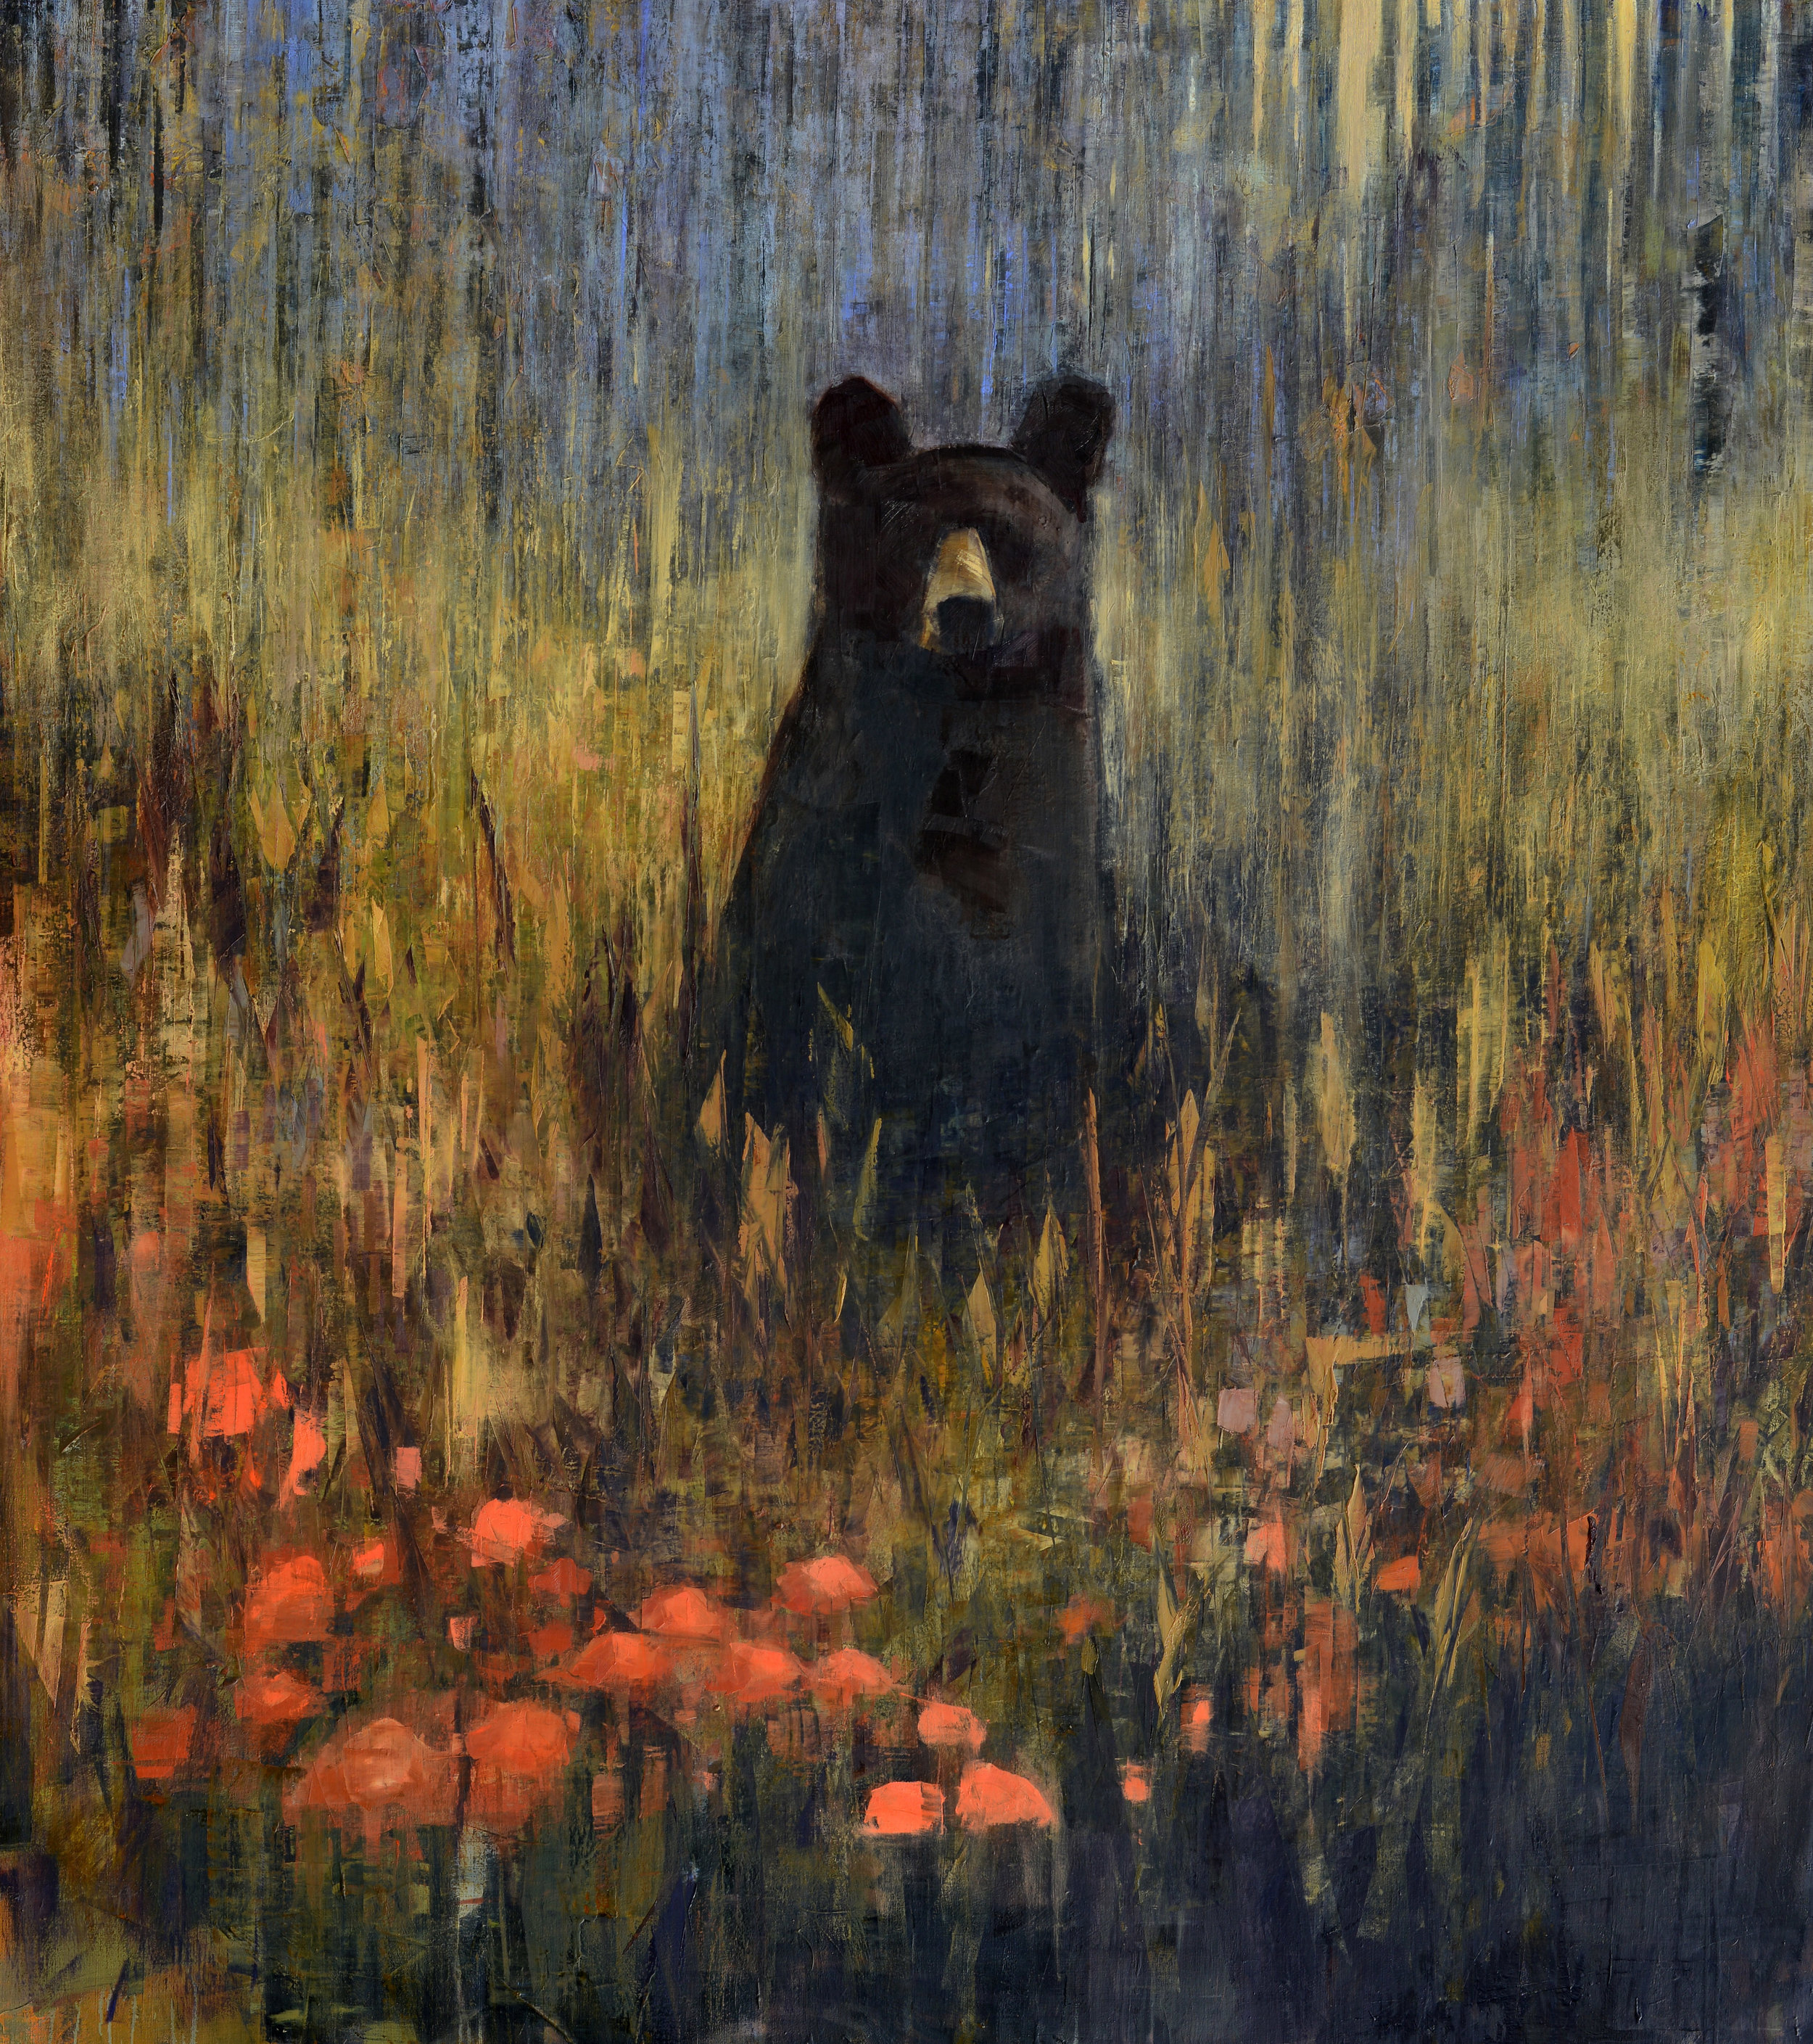 Black Bear Contemplating Autumn_74x66.jpg